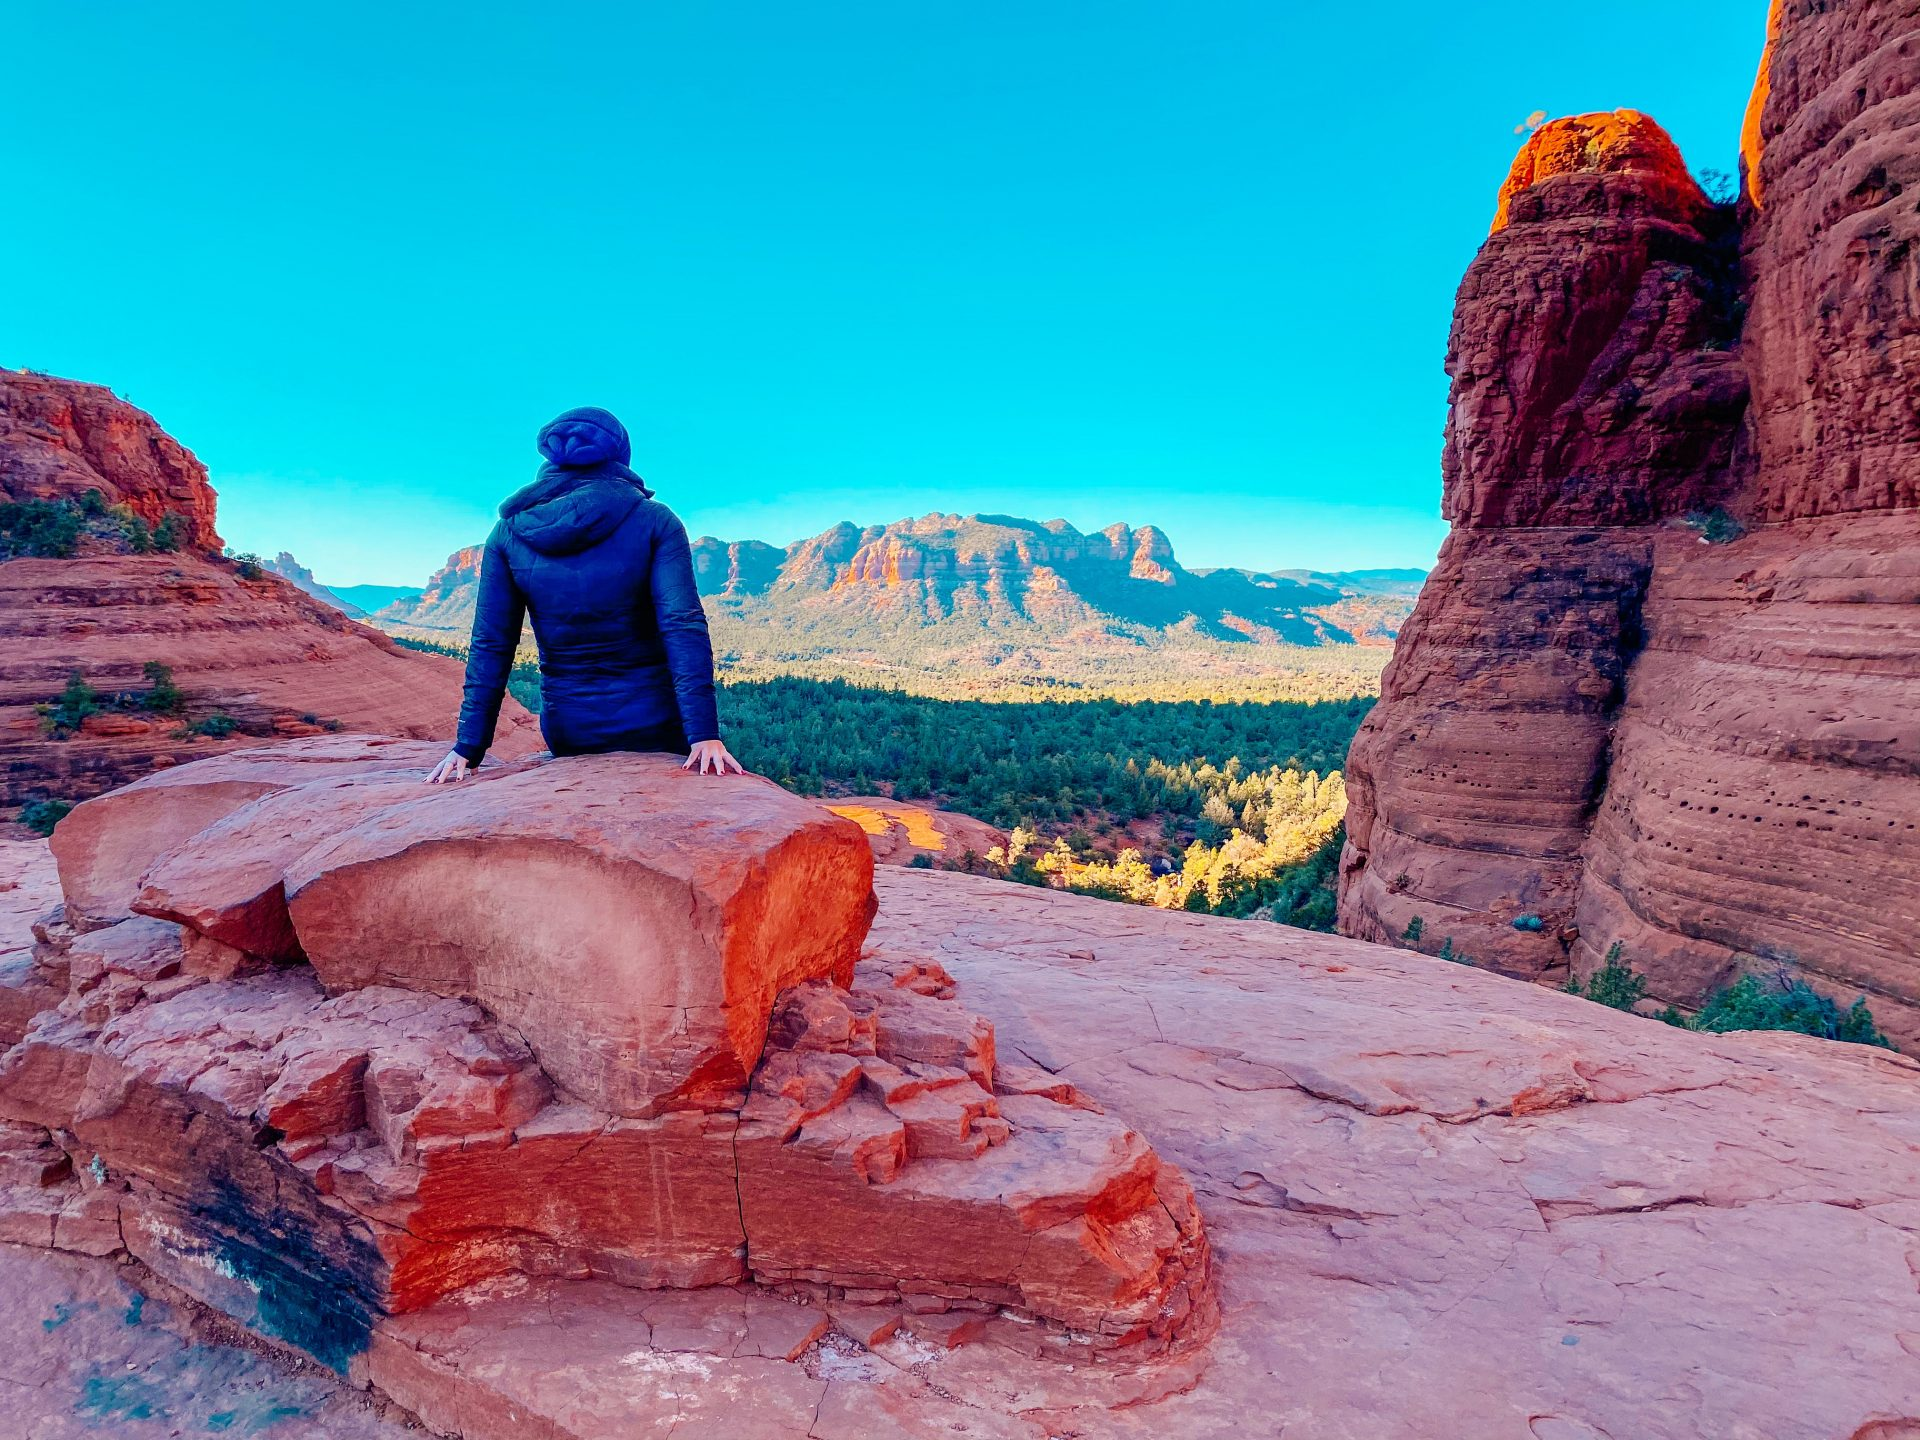 Woman sitting on a red rock formation with back to the camera looking out over Sedona Arizona to red rock formations in the distance. A cloudless blue sky is overhead.